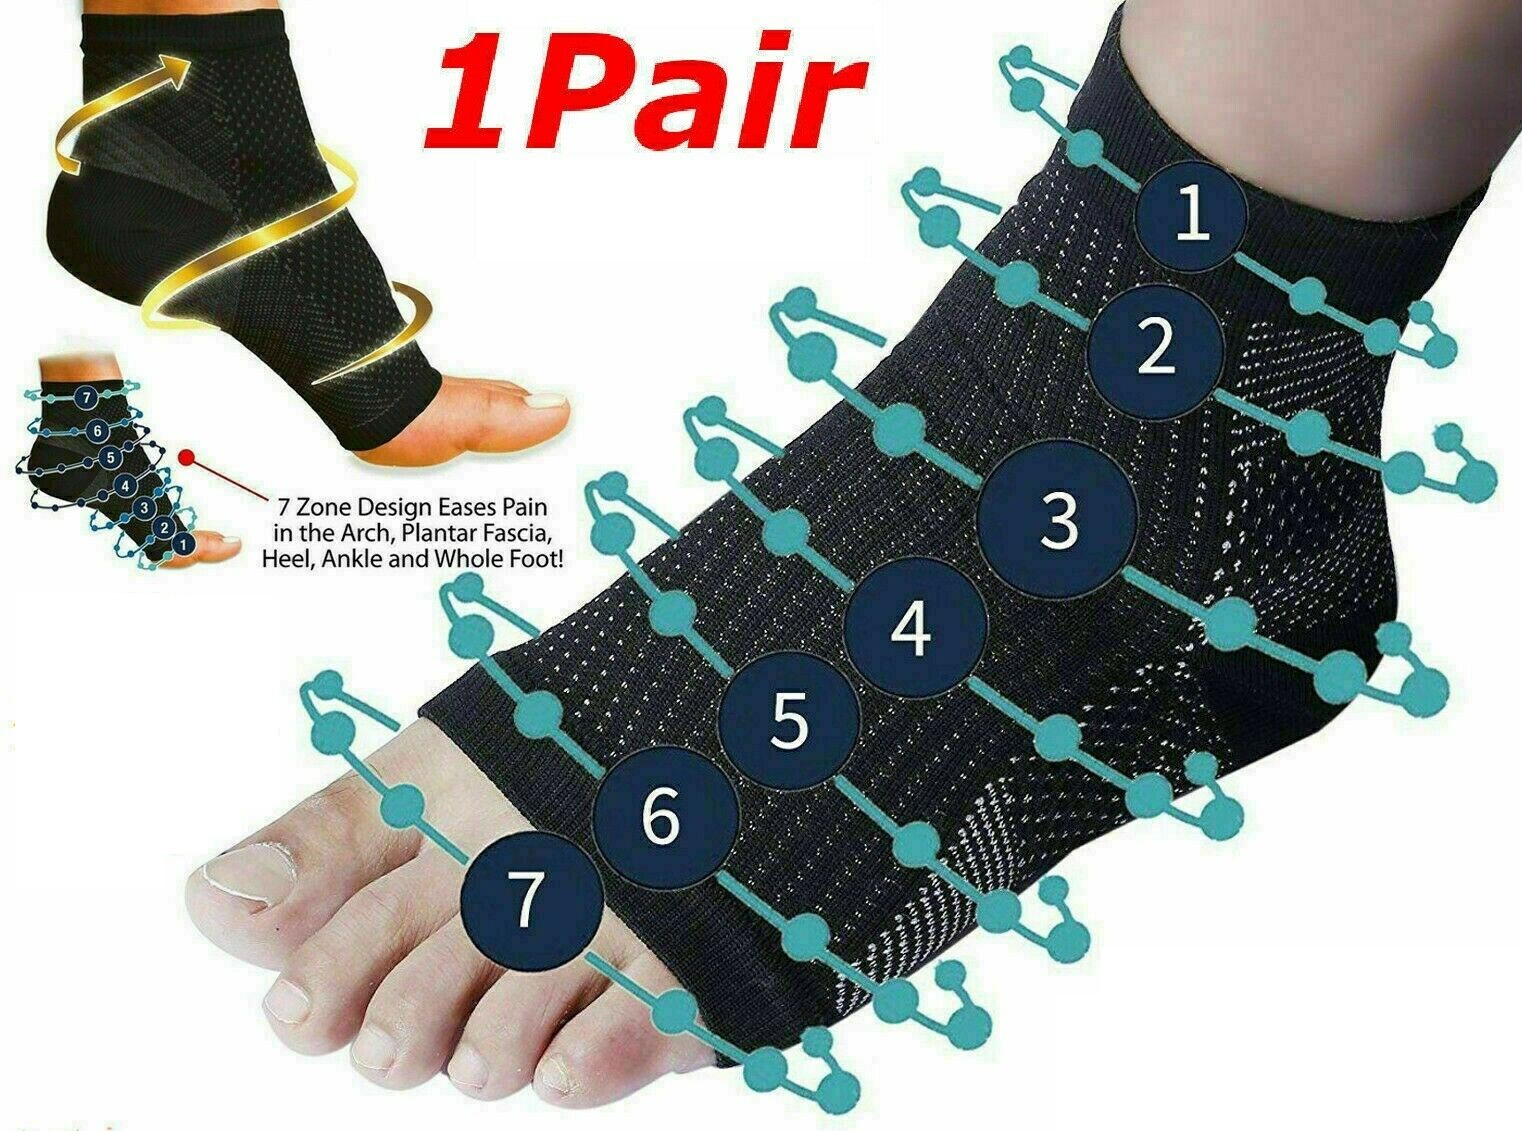 2 X Plantar Fasciitis Compression Socks Heel Foot Arch Pain Relief Support Pair Large And Extra Large